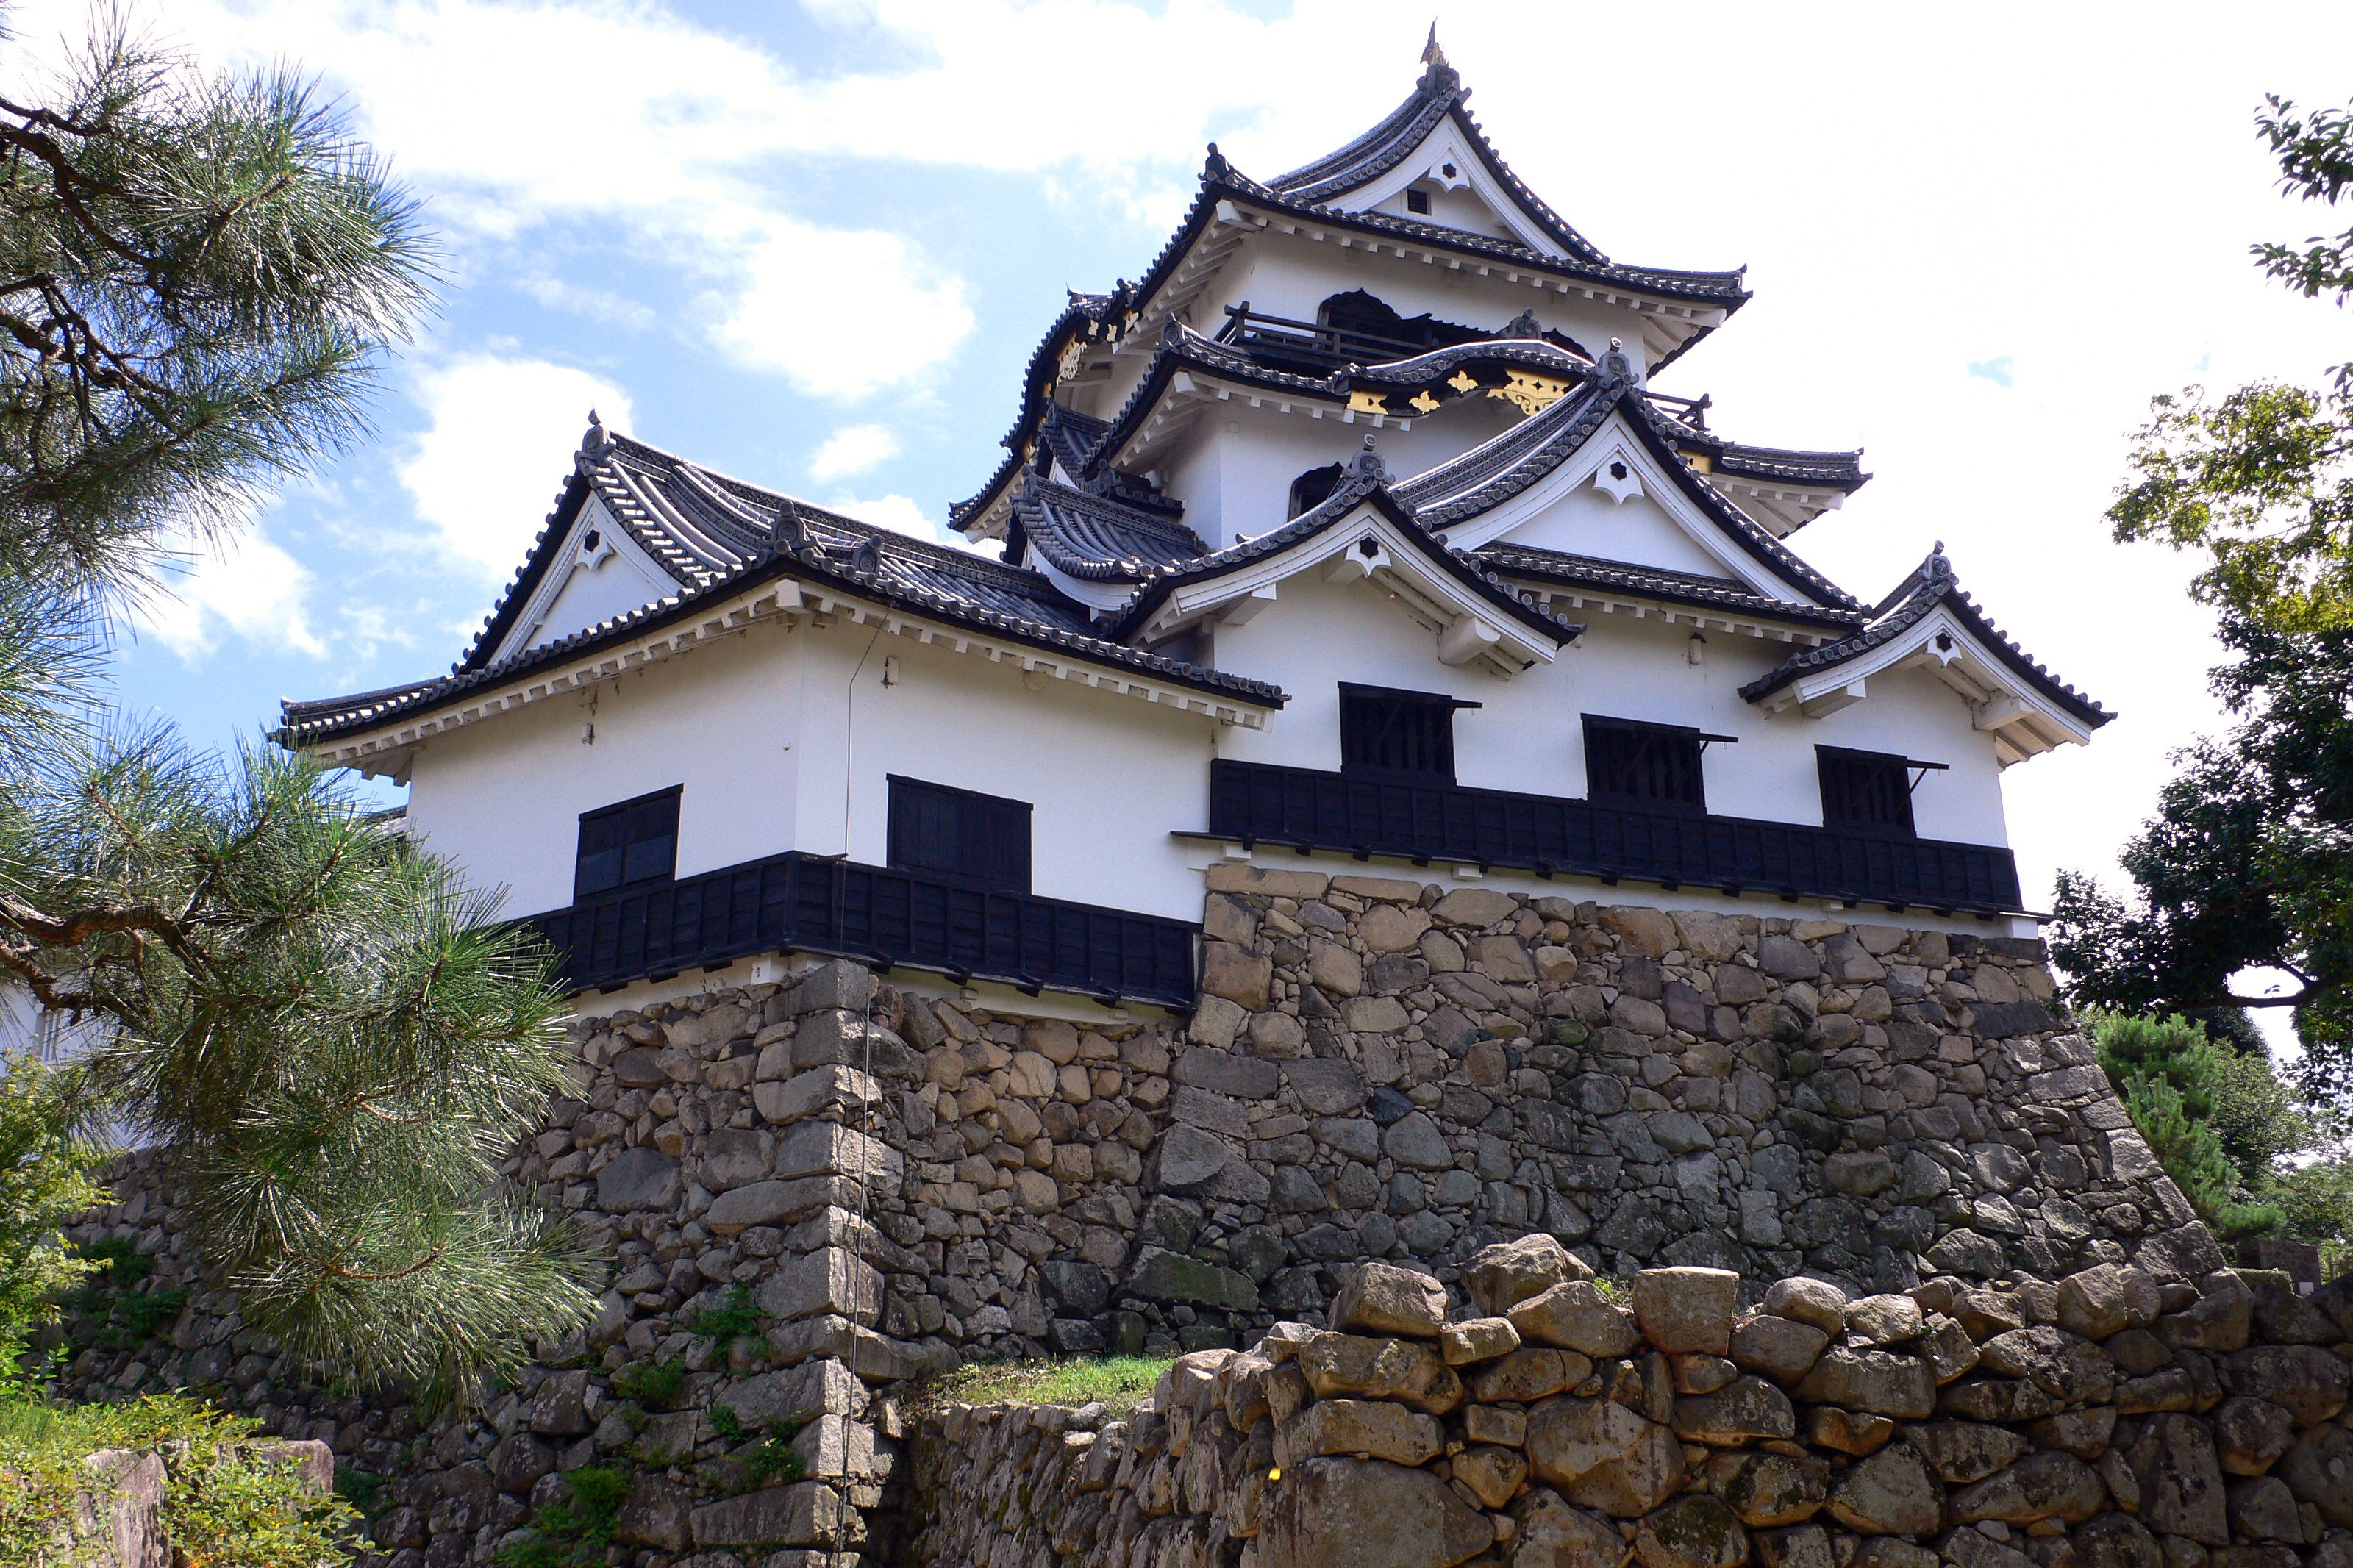 Top 12 Oldest Castles in Japan: Keeps That Stood the Test of Time